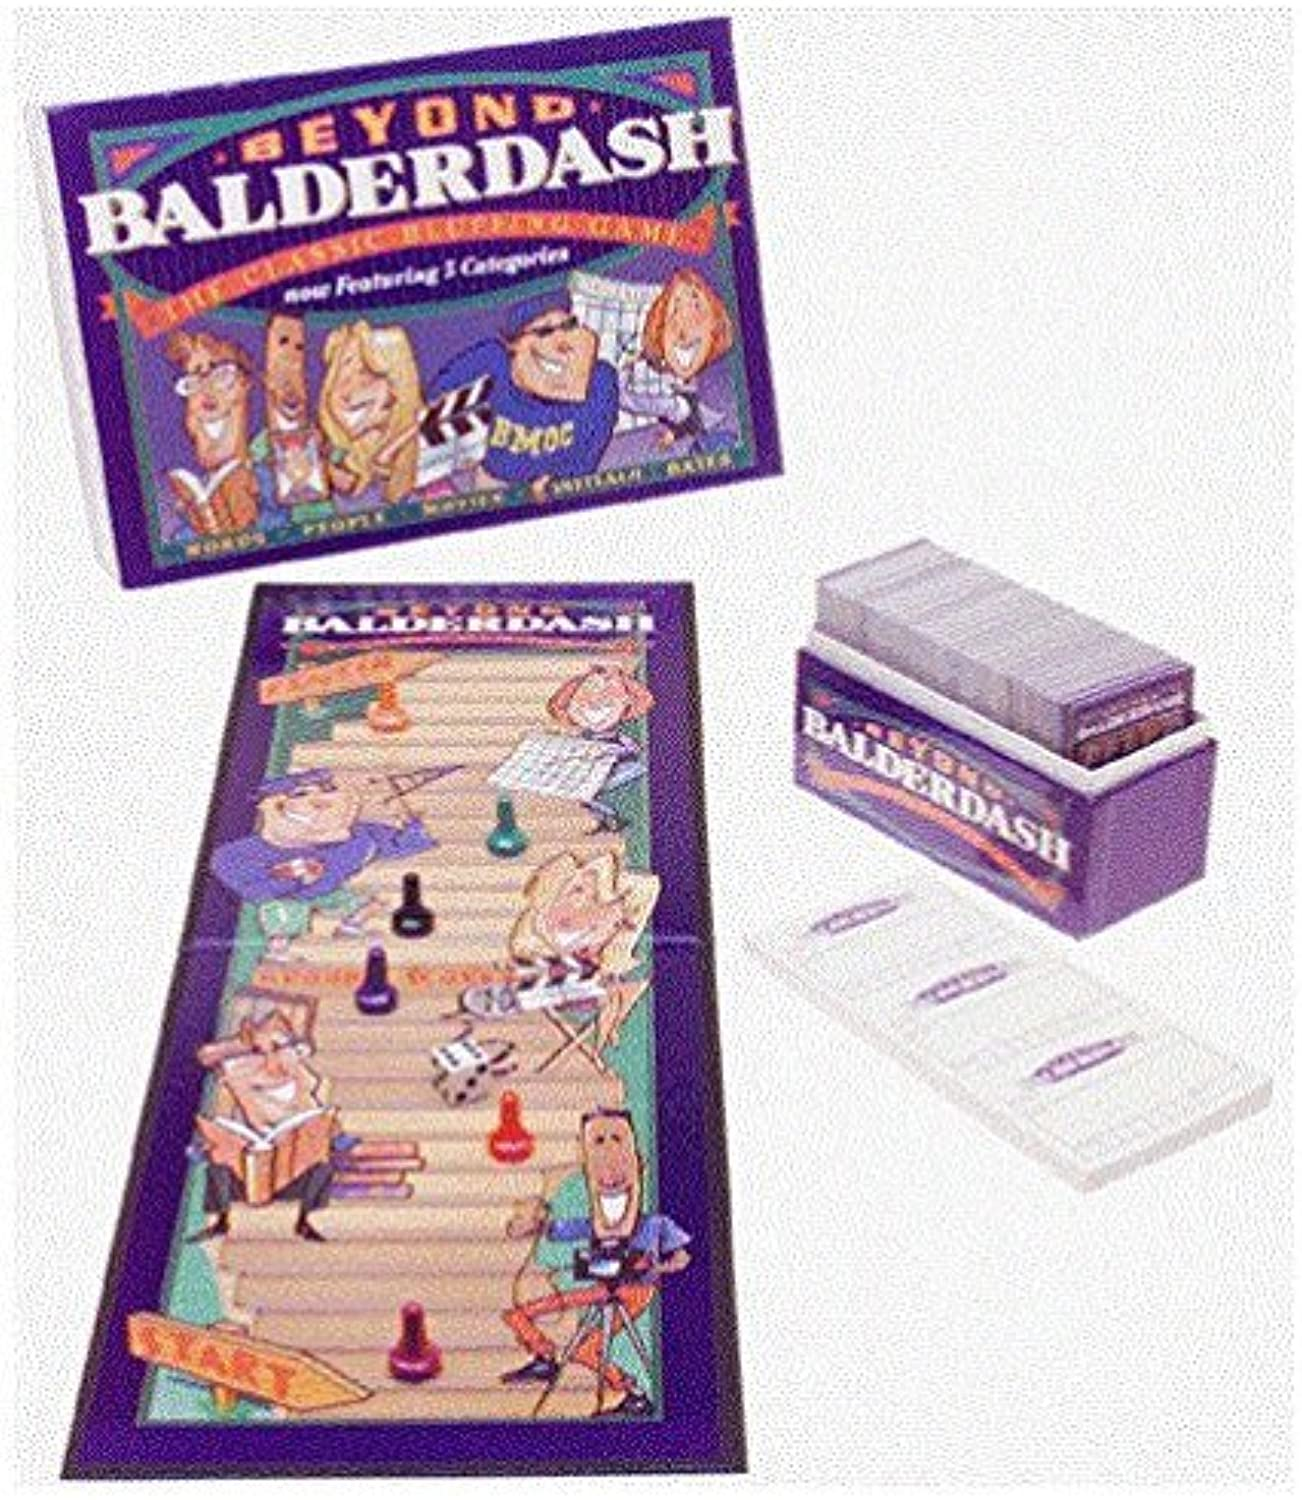 hasta un 50% de descuento Beyond Balderdash - Now Featuring Five Categories by Parker Brojohers Brojohers Brojohers  marca famosa